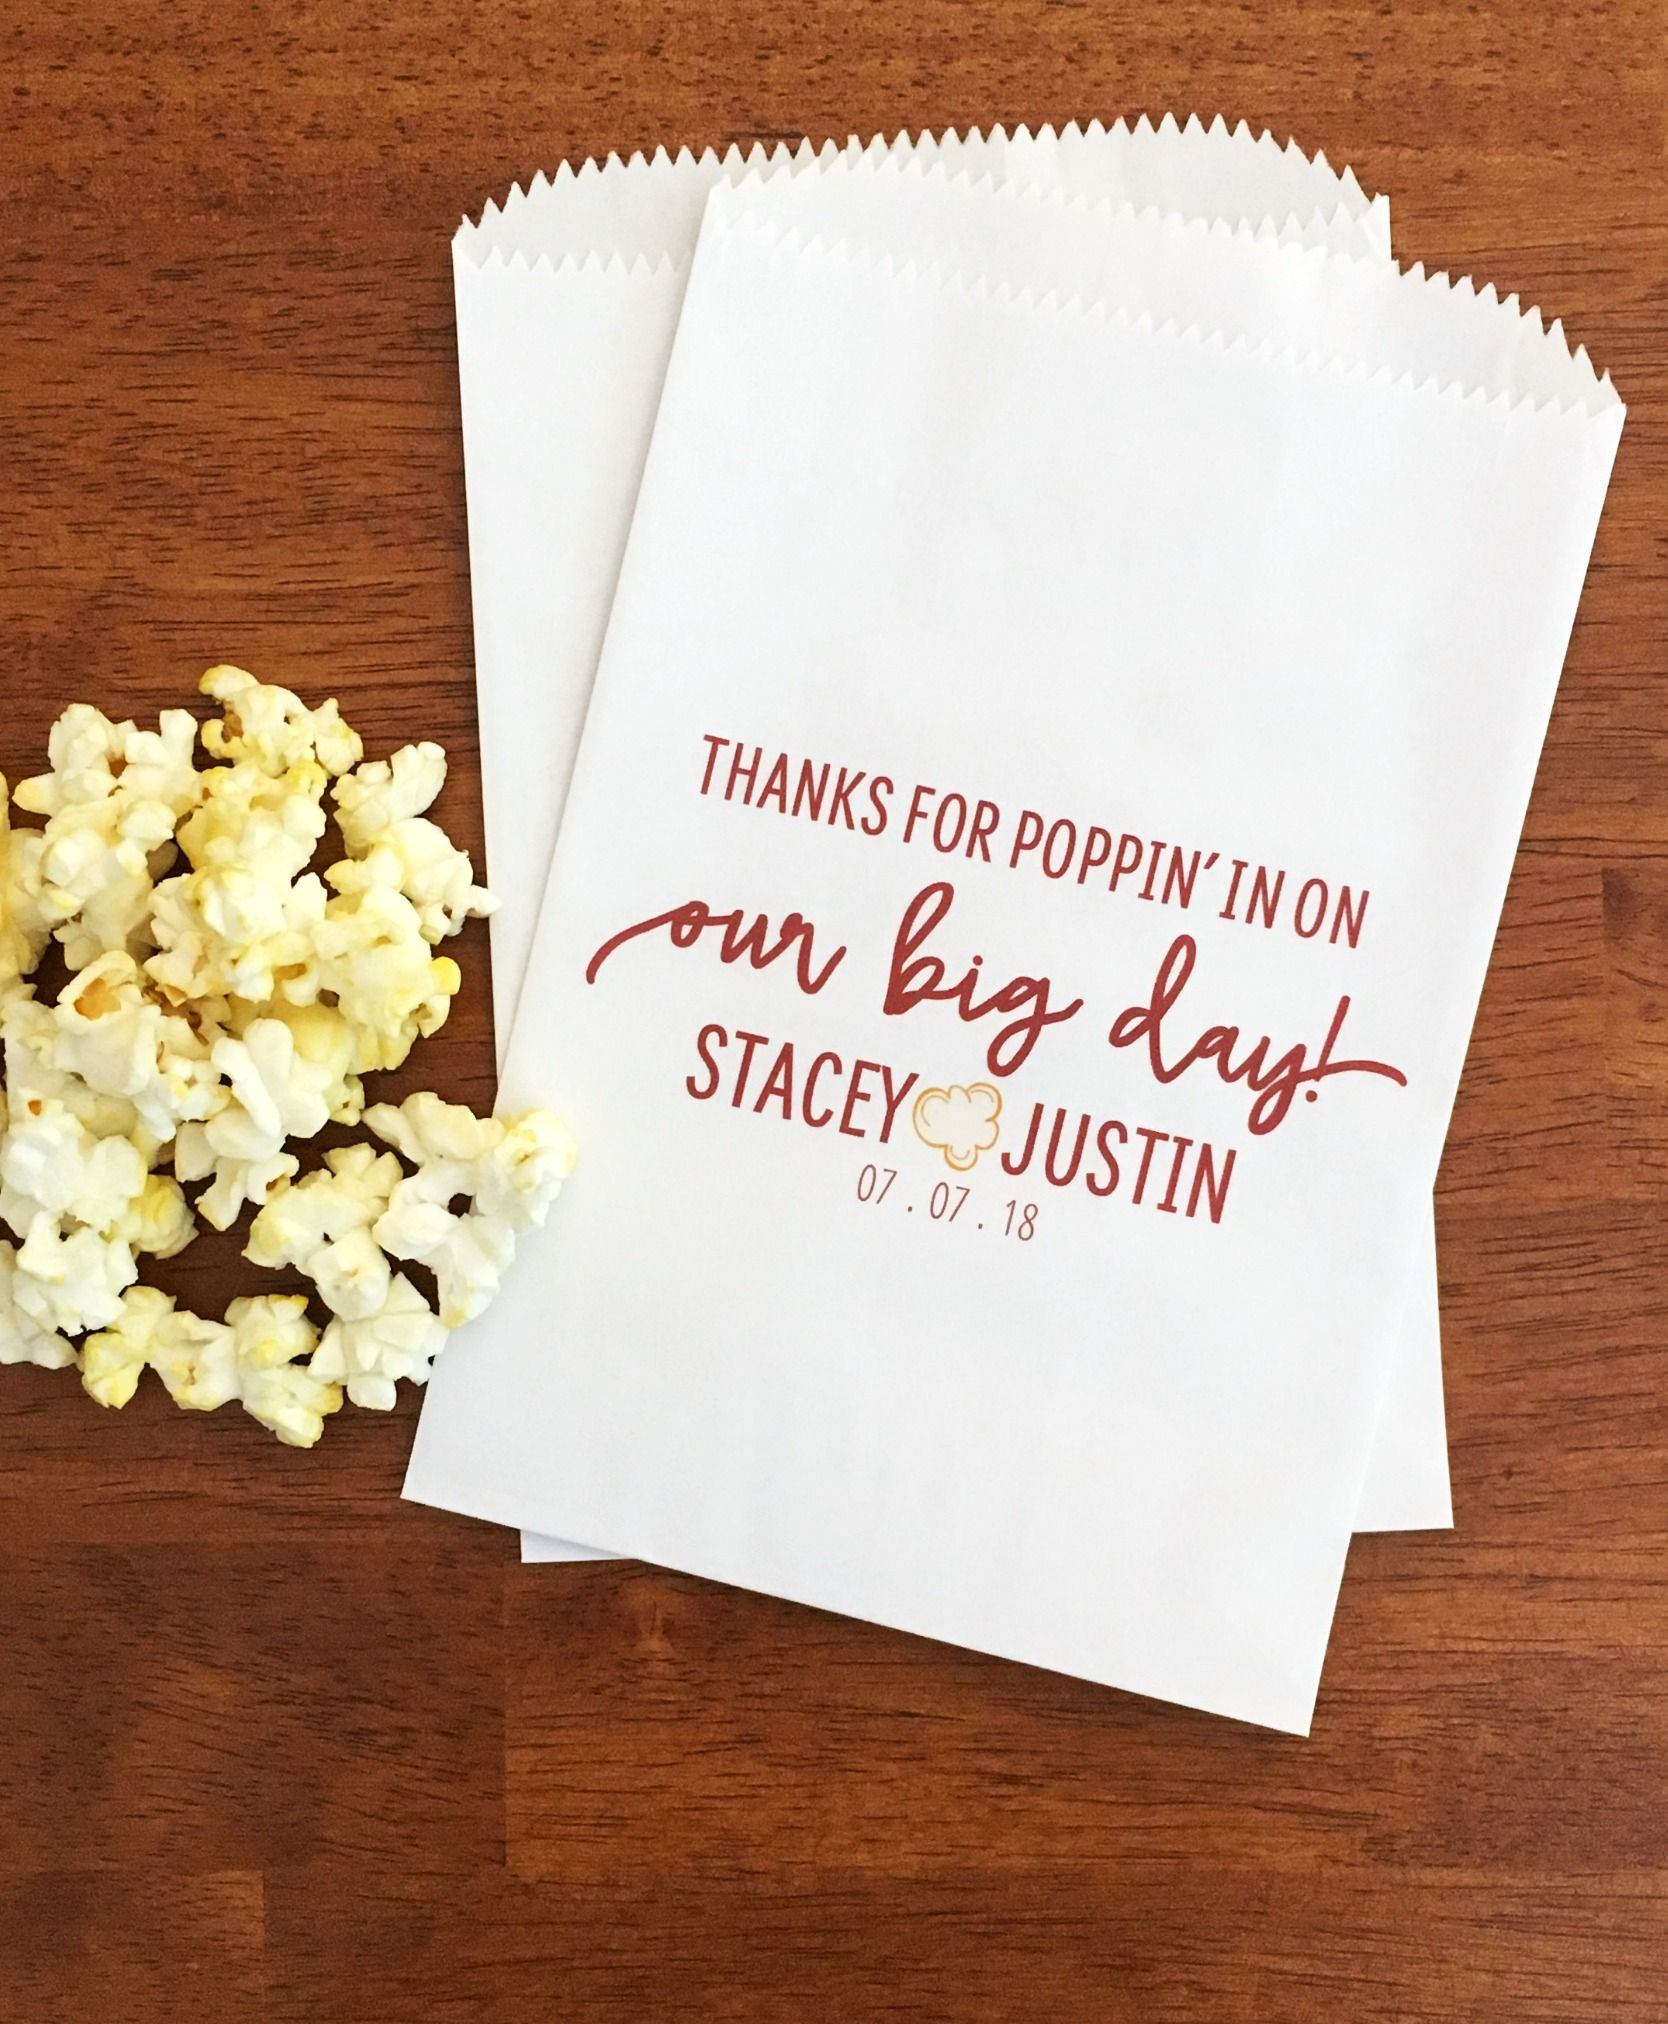 Fun Wedding Favor Idea Popcorn Bags Lined Personalized Bar Thanks For Popping By Snack